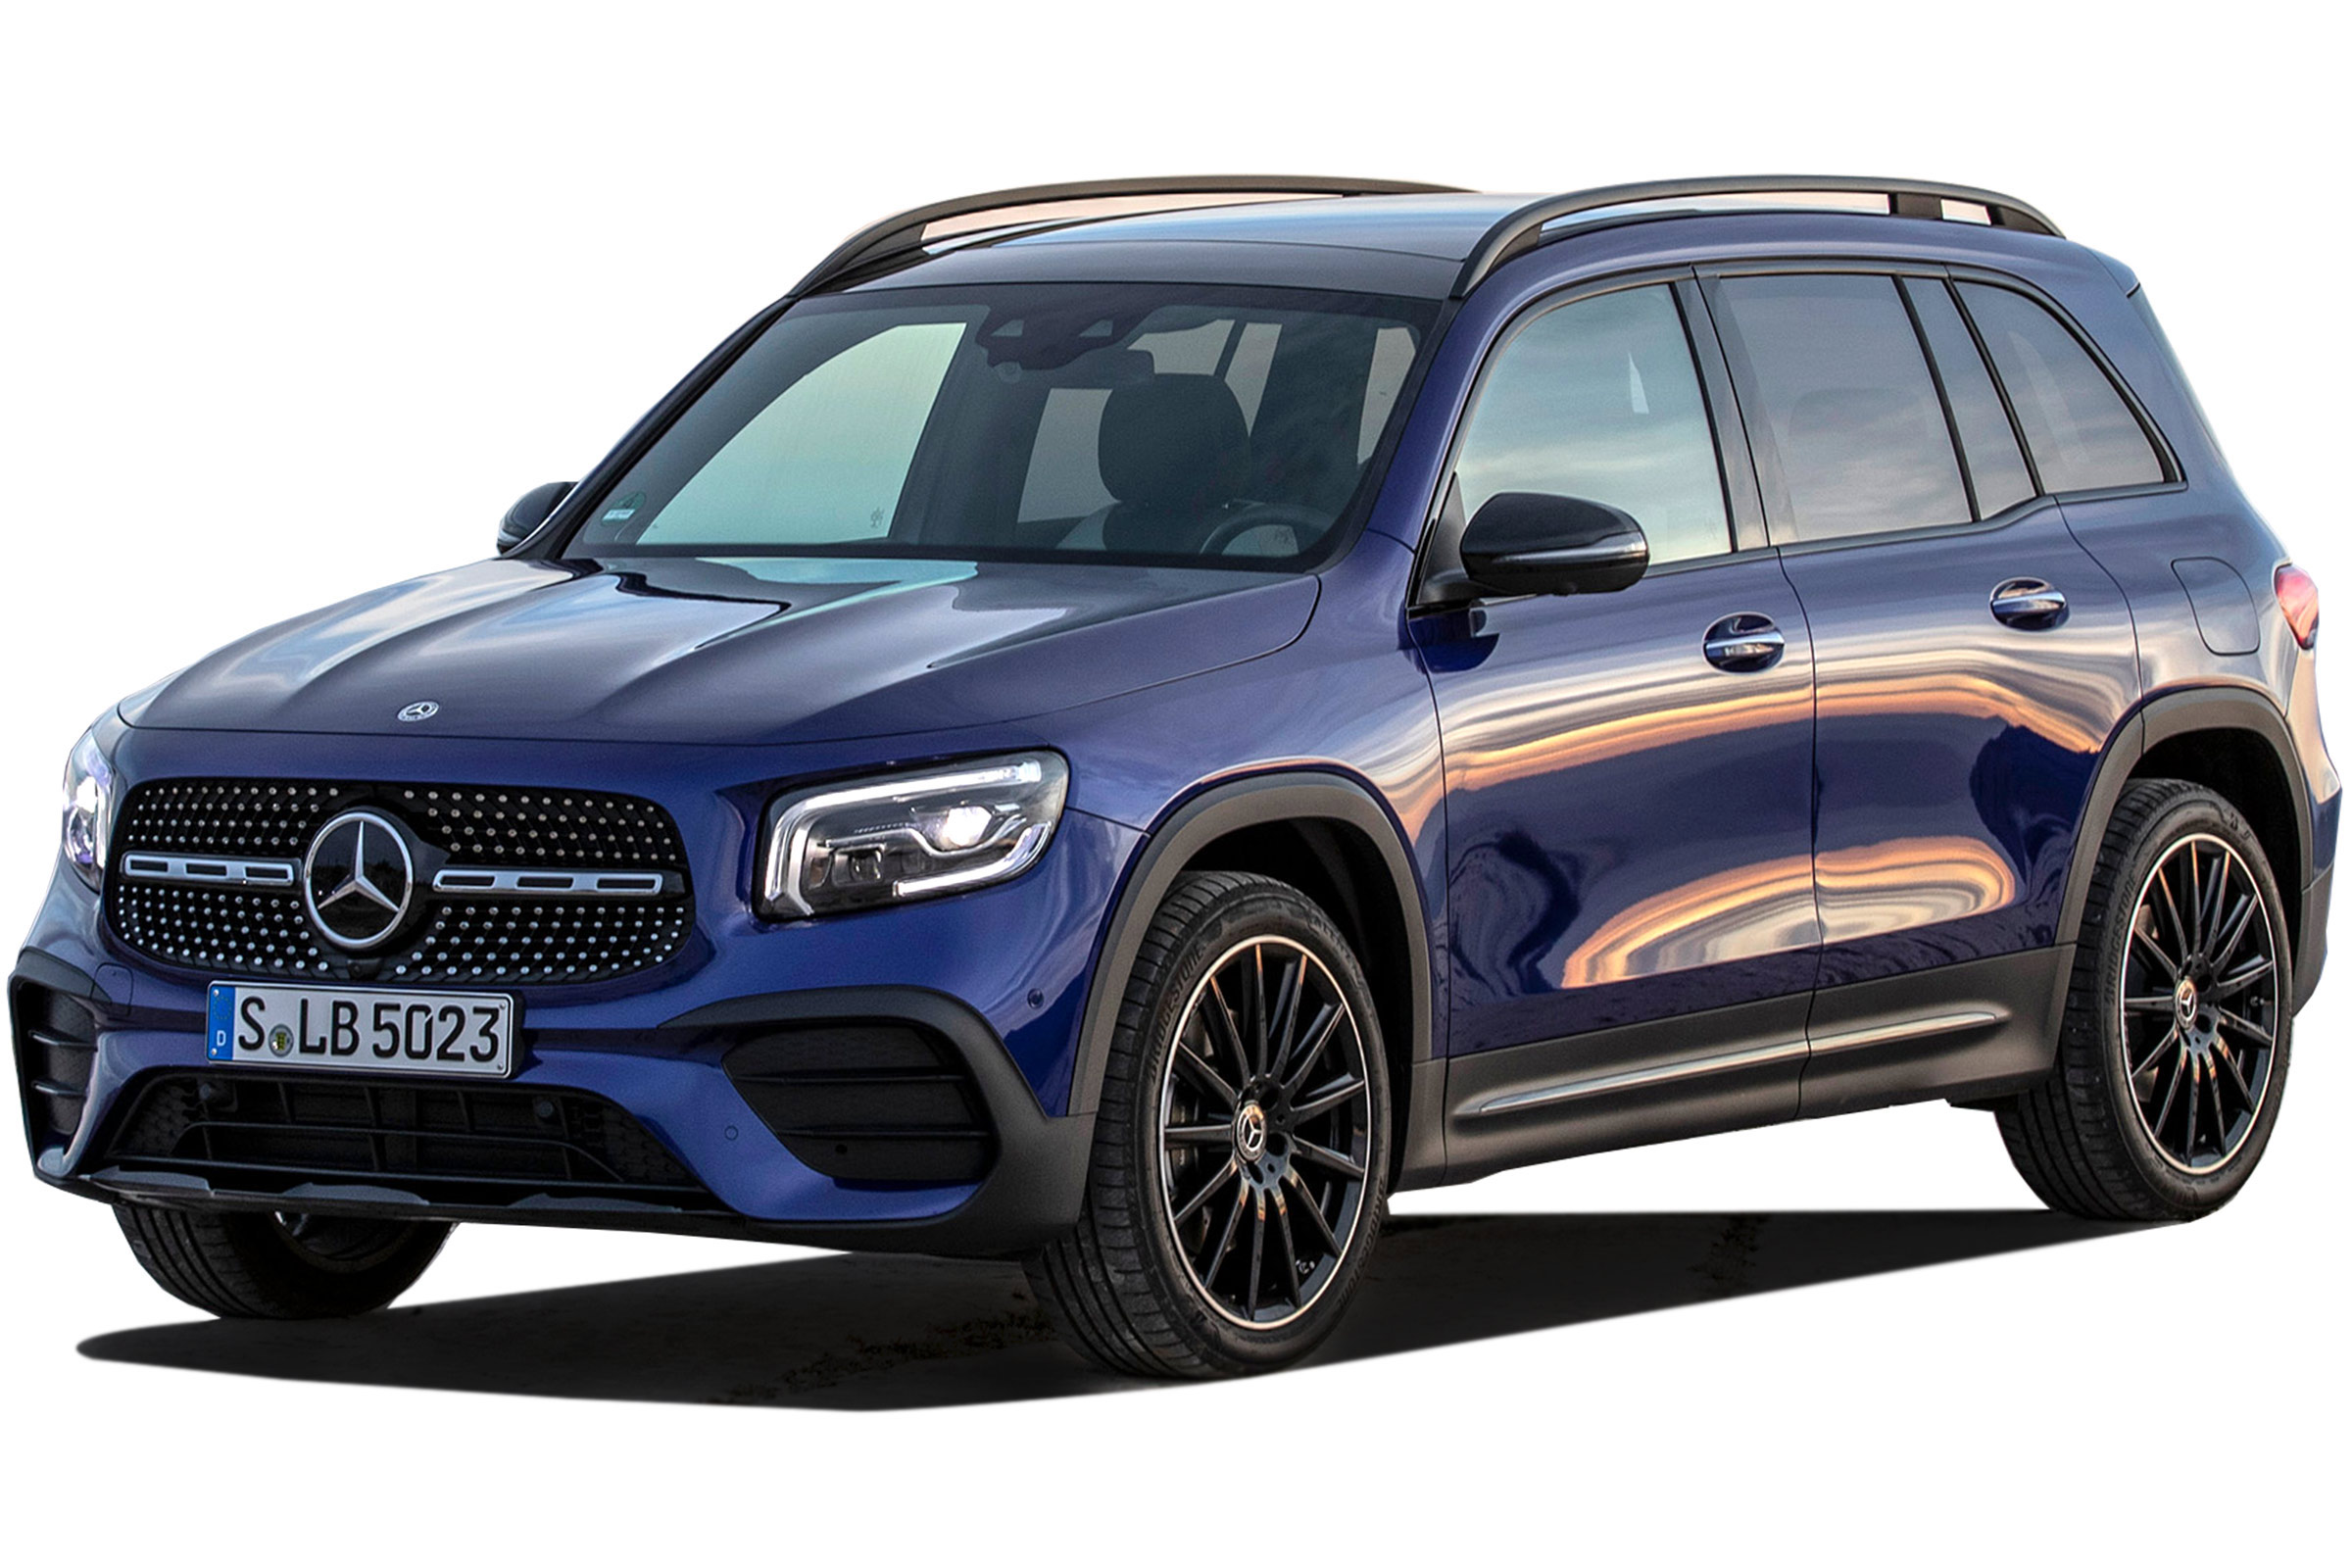 Mercedes Glb Suv 2020 Review Carbuyer